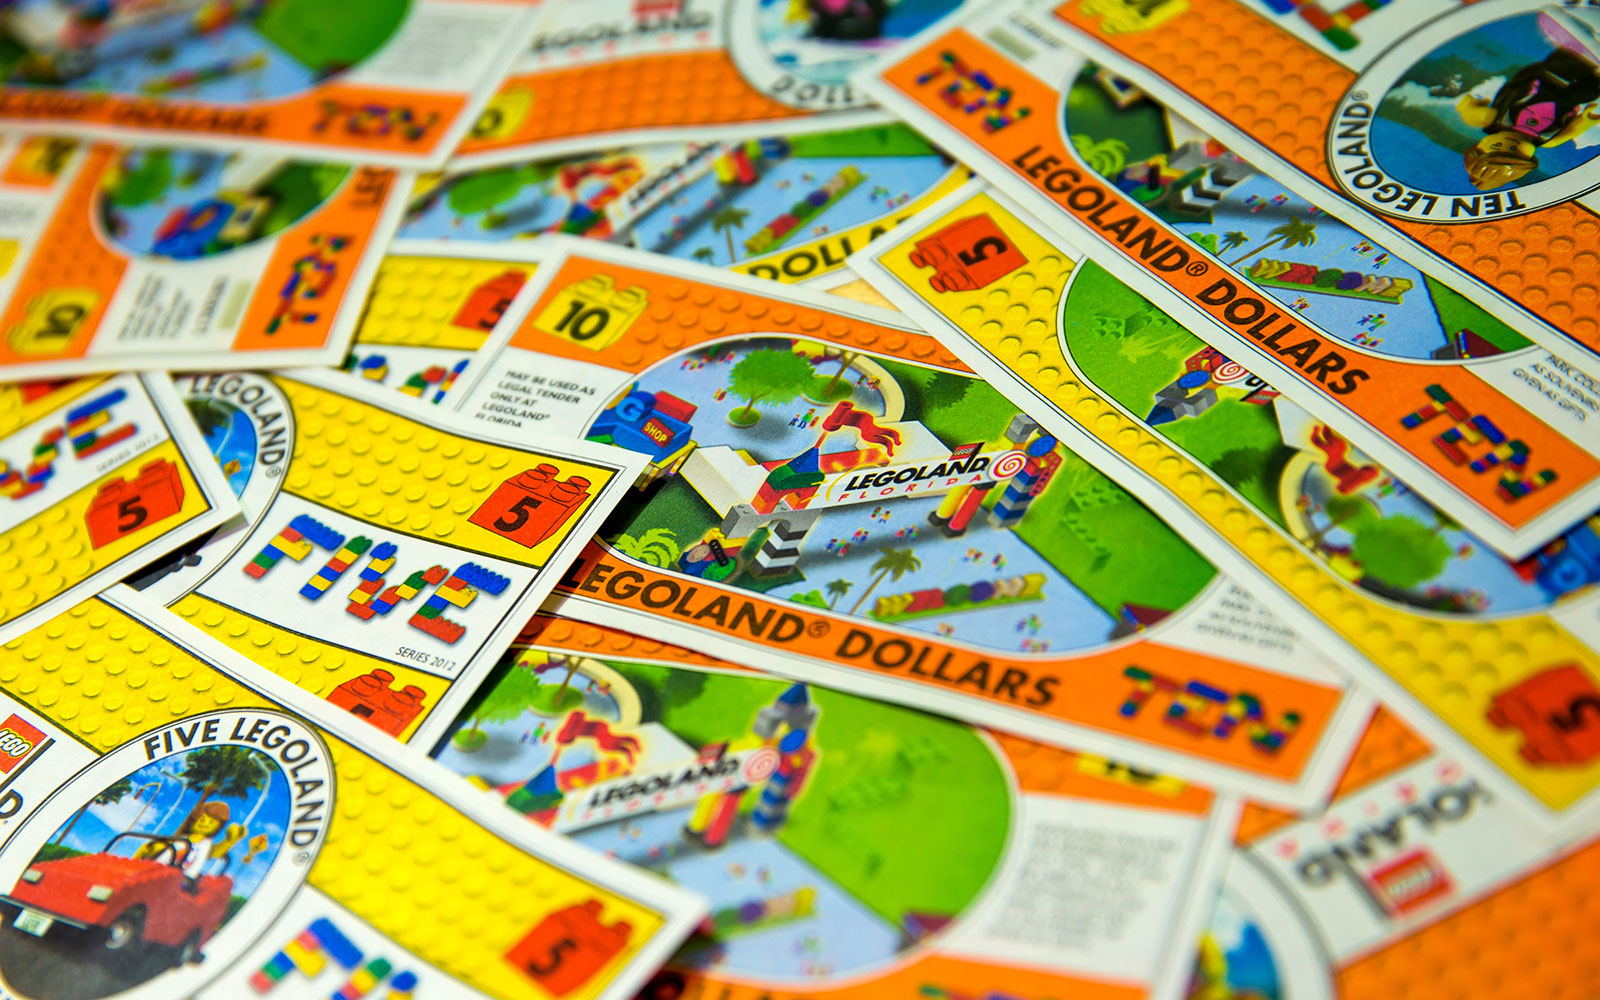 Legoland Dollars Are Now On Travelex's Currency Exchange Board